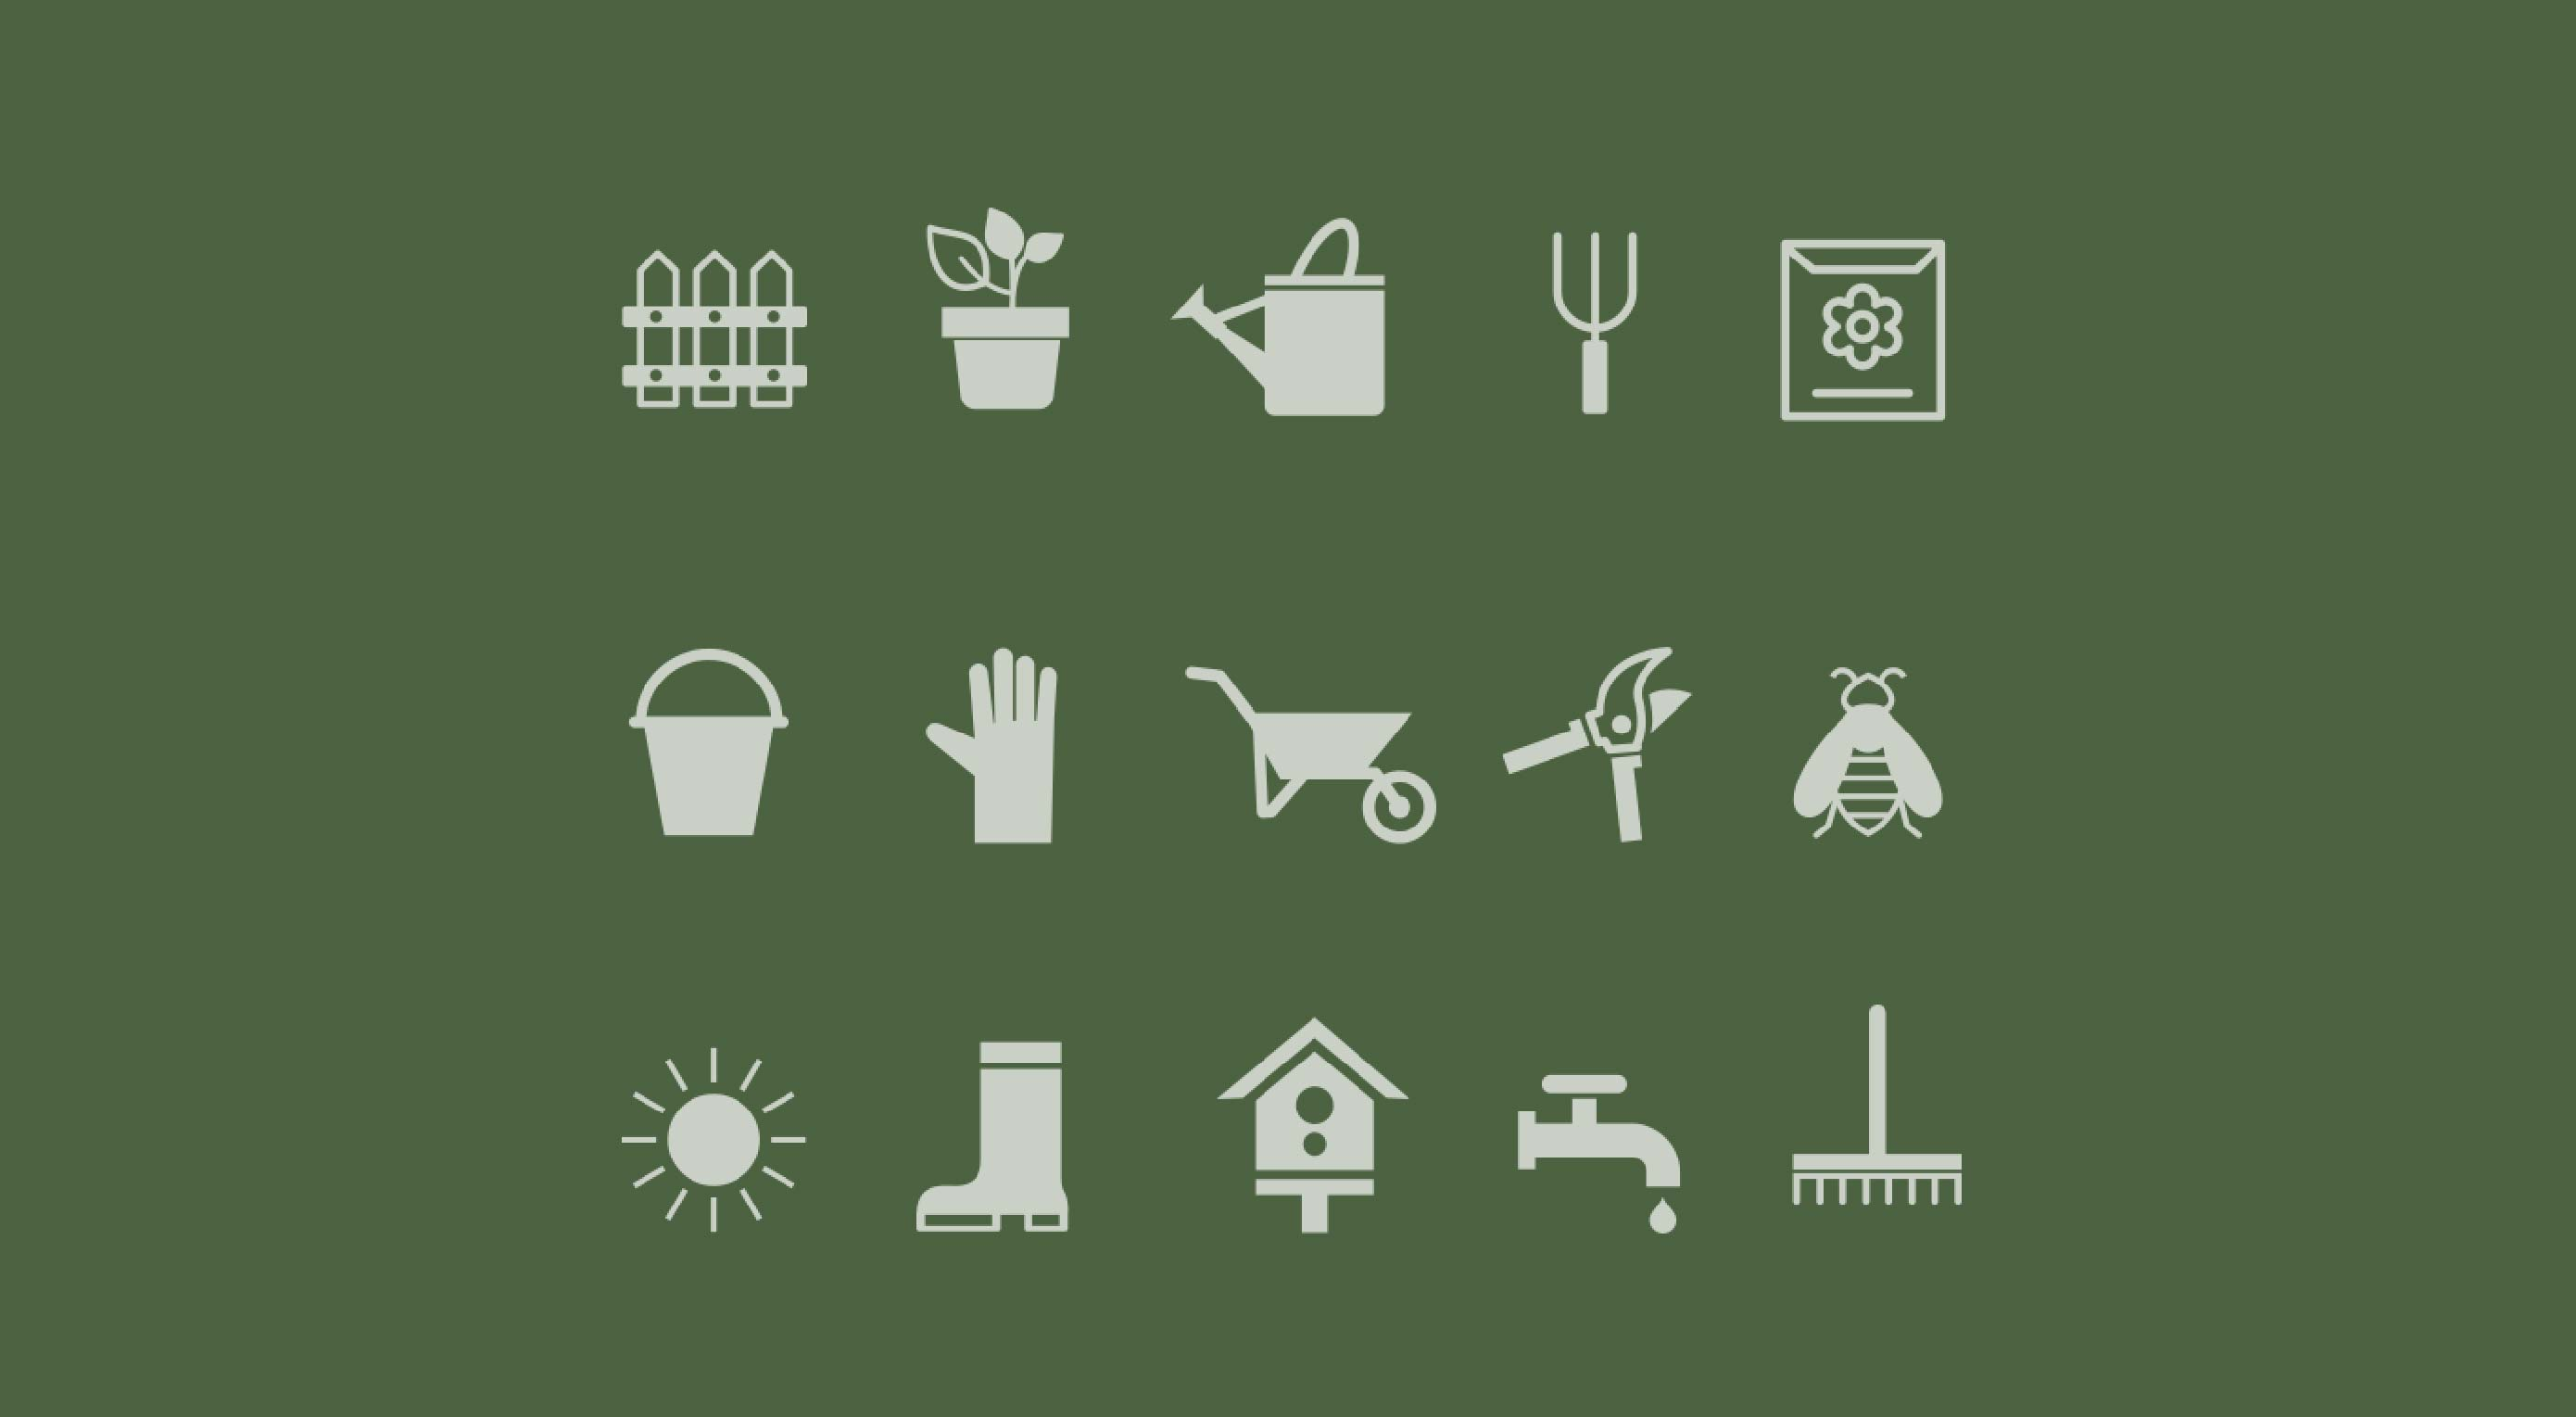 8 simple steps to better icon design